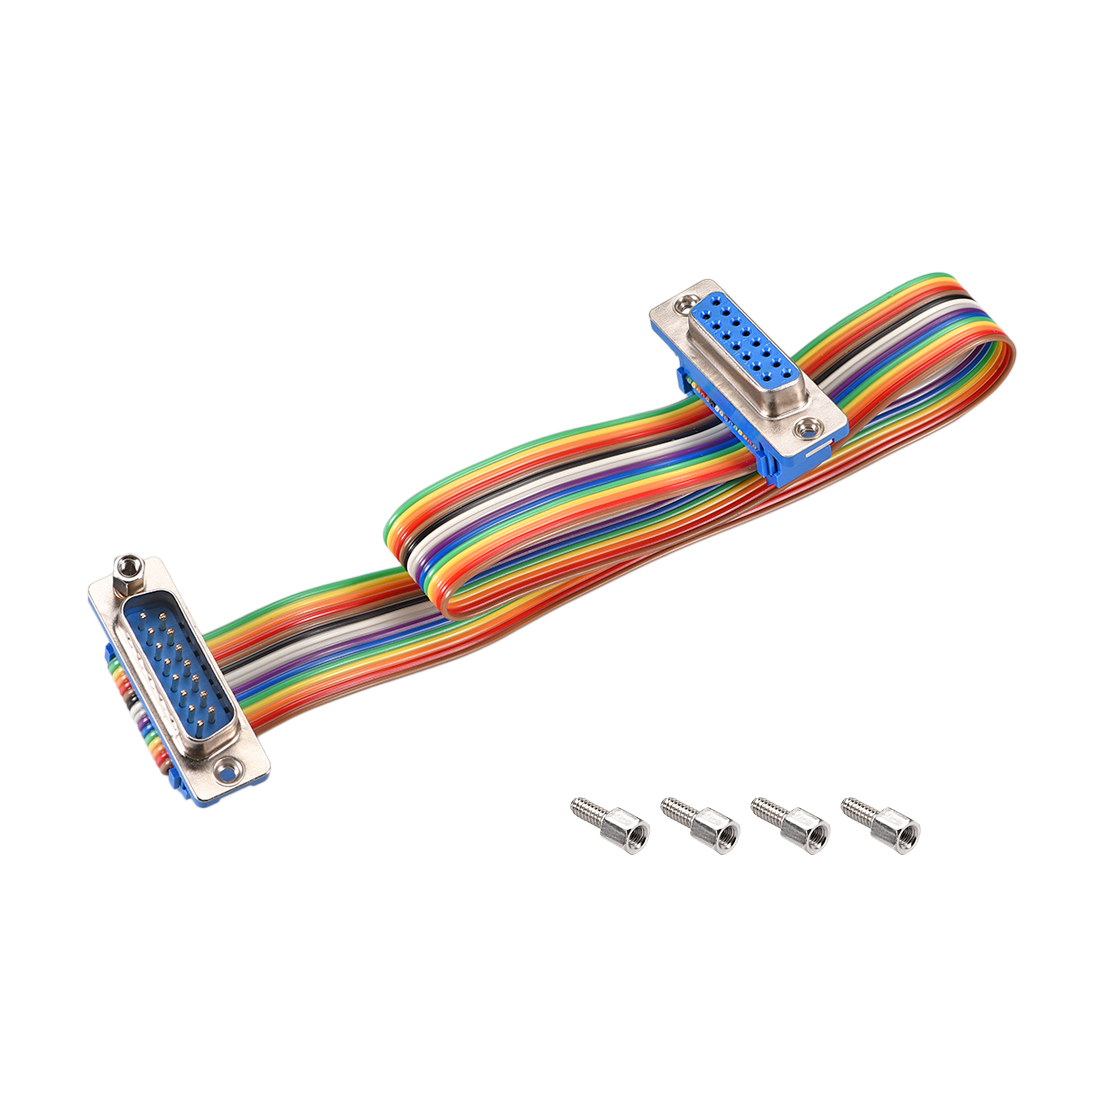 IDC Rainbow Wire Flat Ribbon Cable DB15 M/F Connector 2.54mm Pitch 11.8inch Long